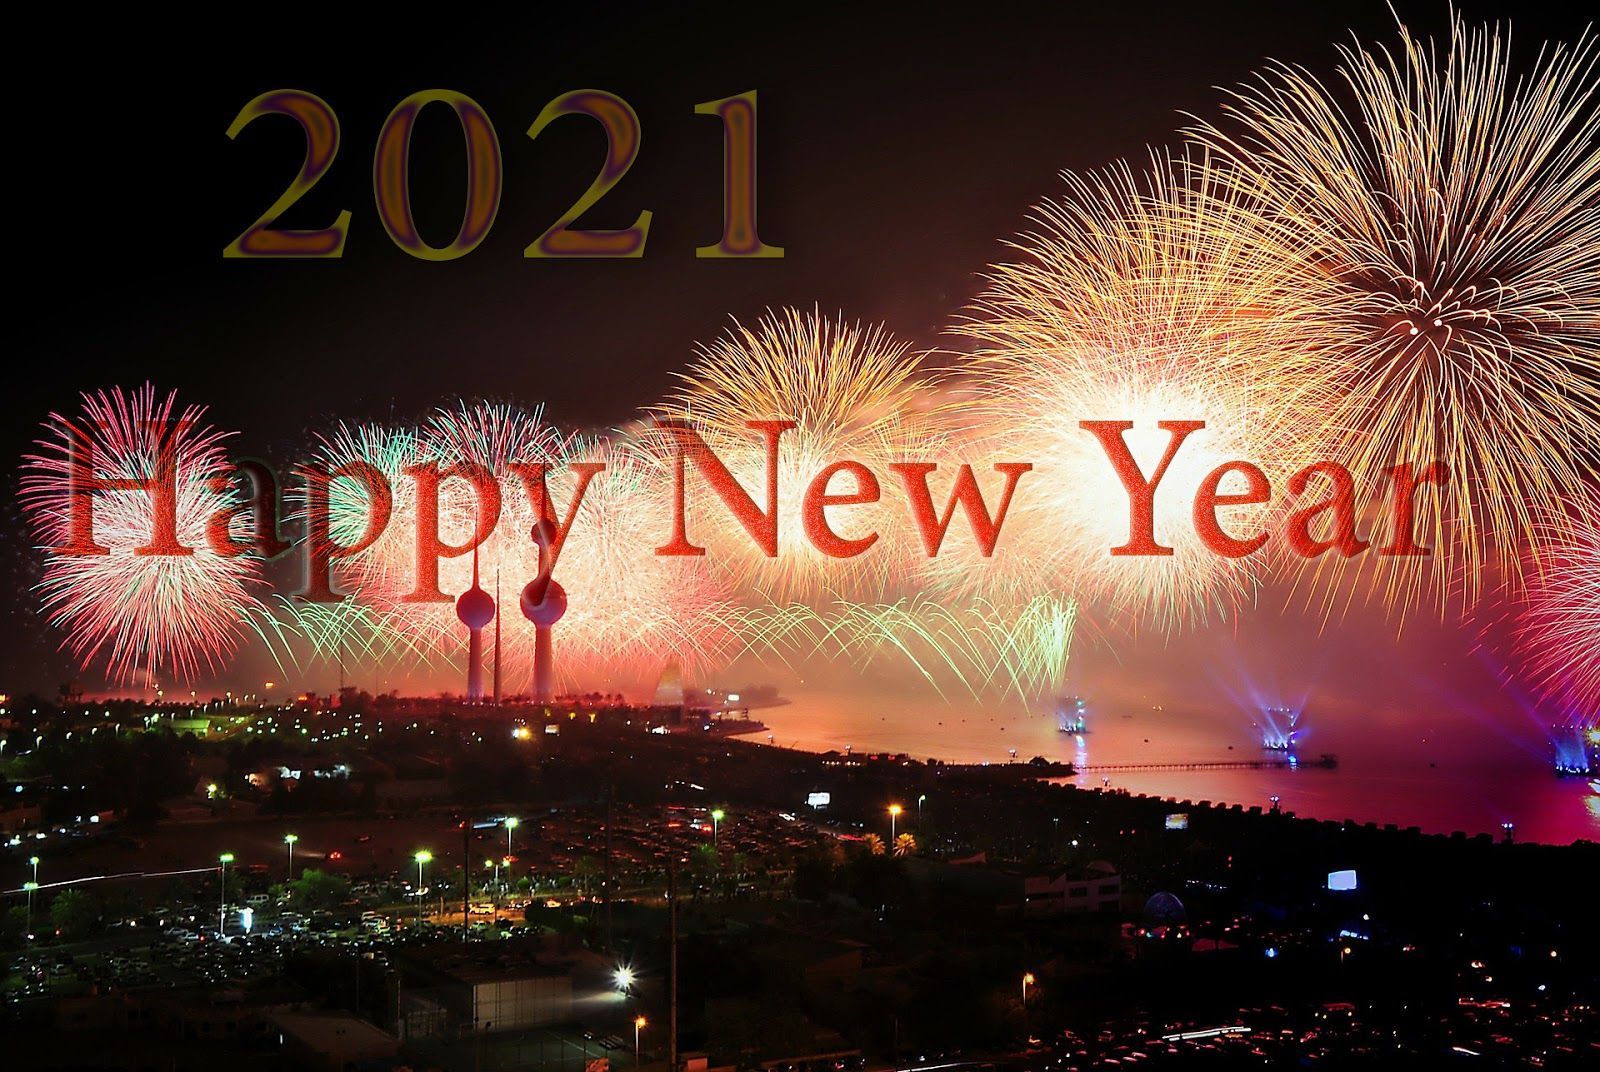 Happy New Year 2021 Wallpapers 1600x1072